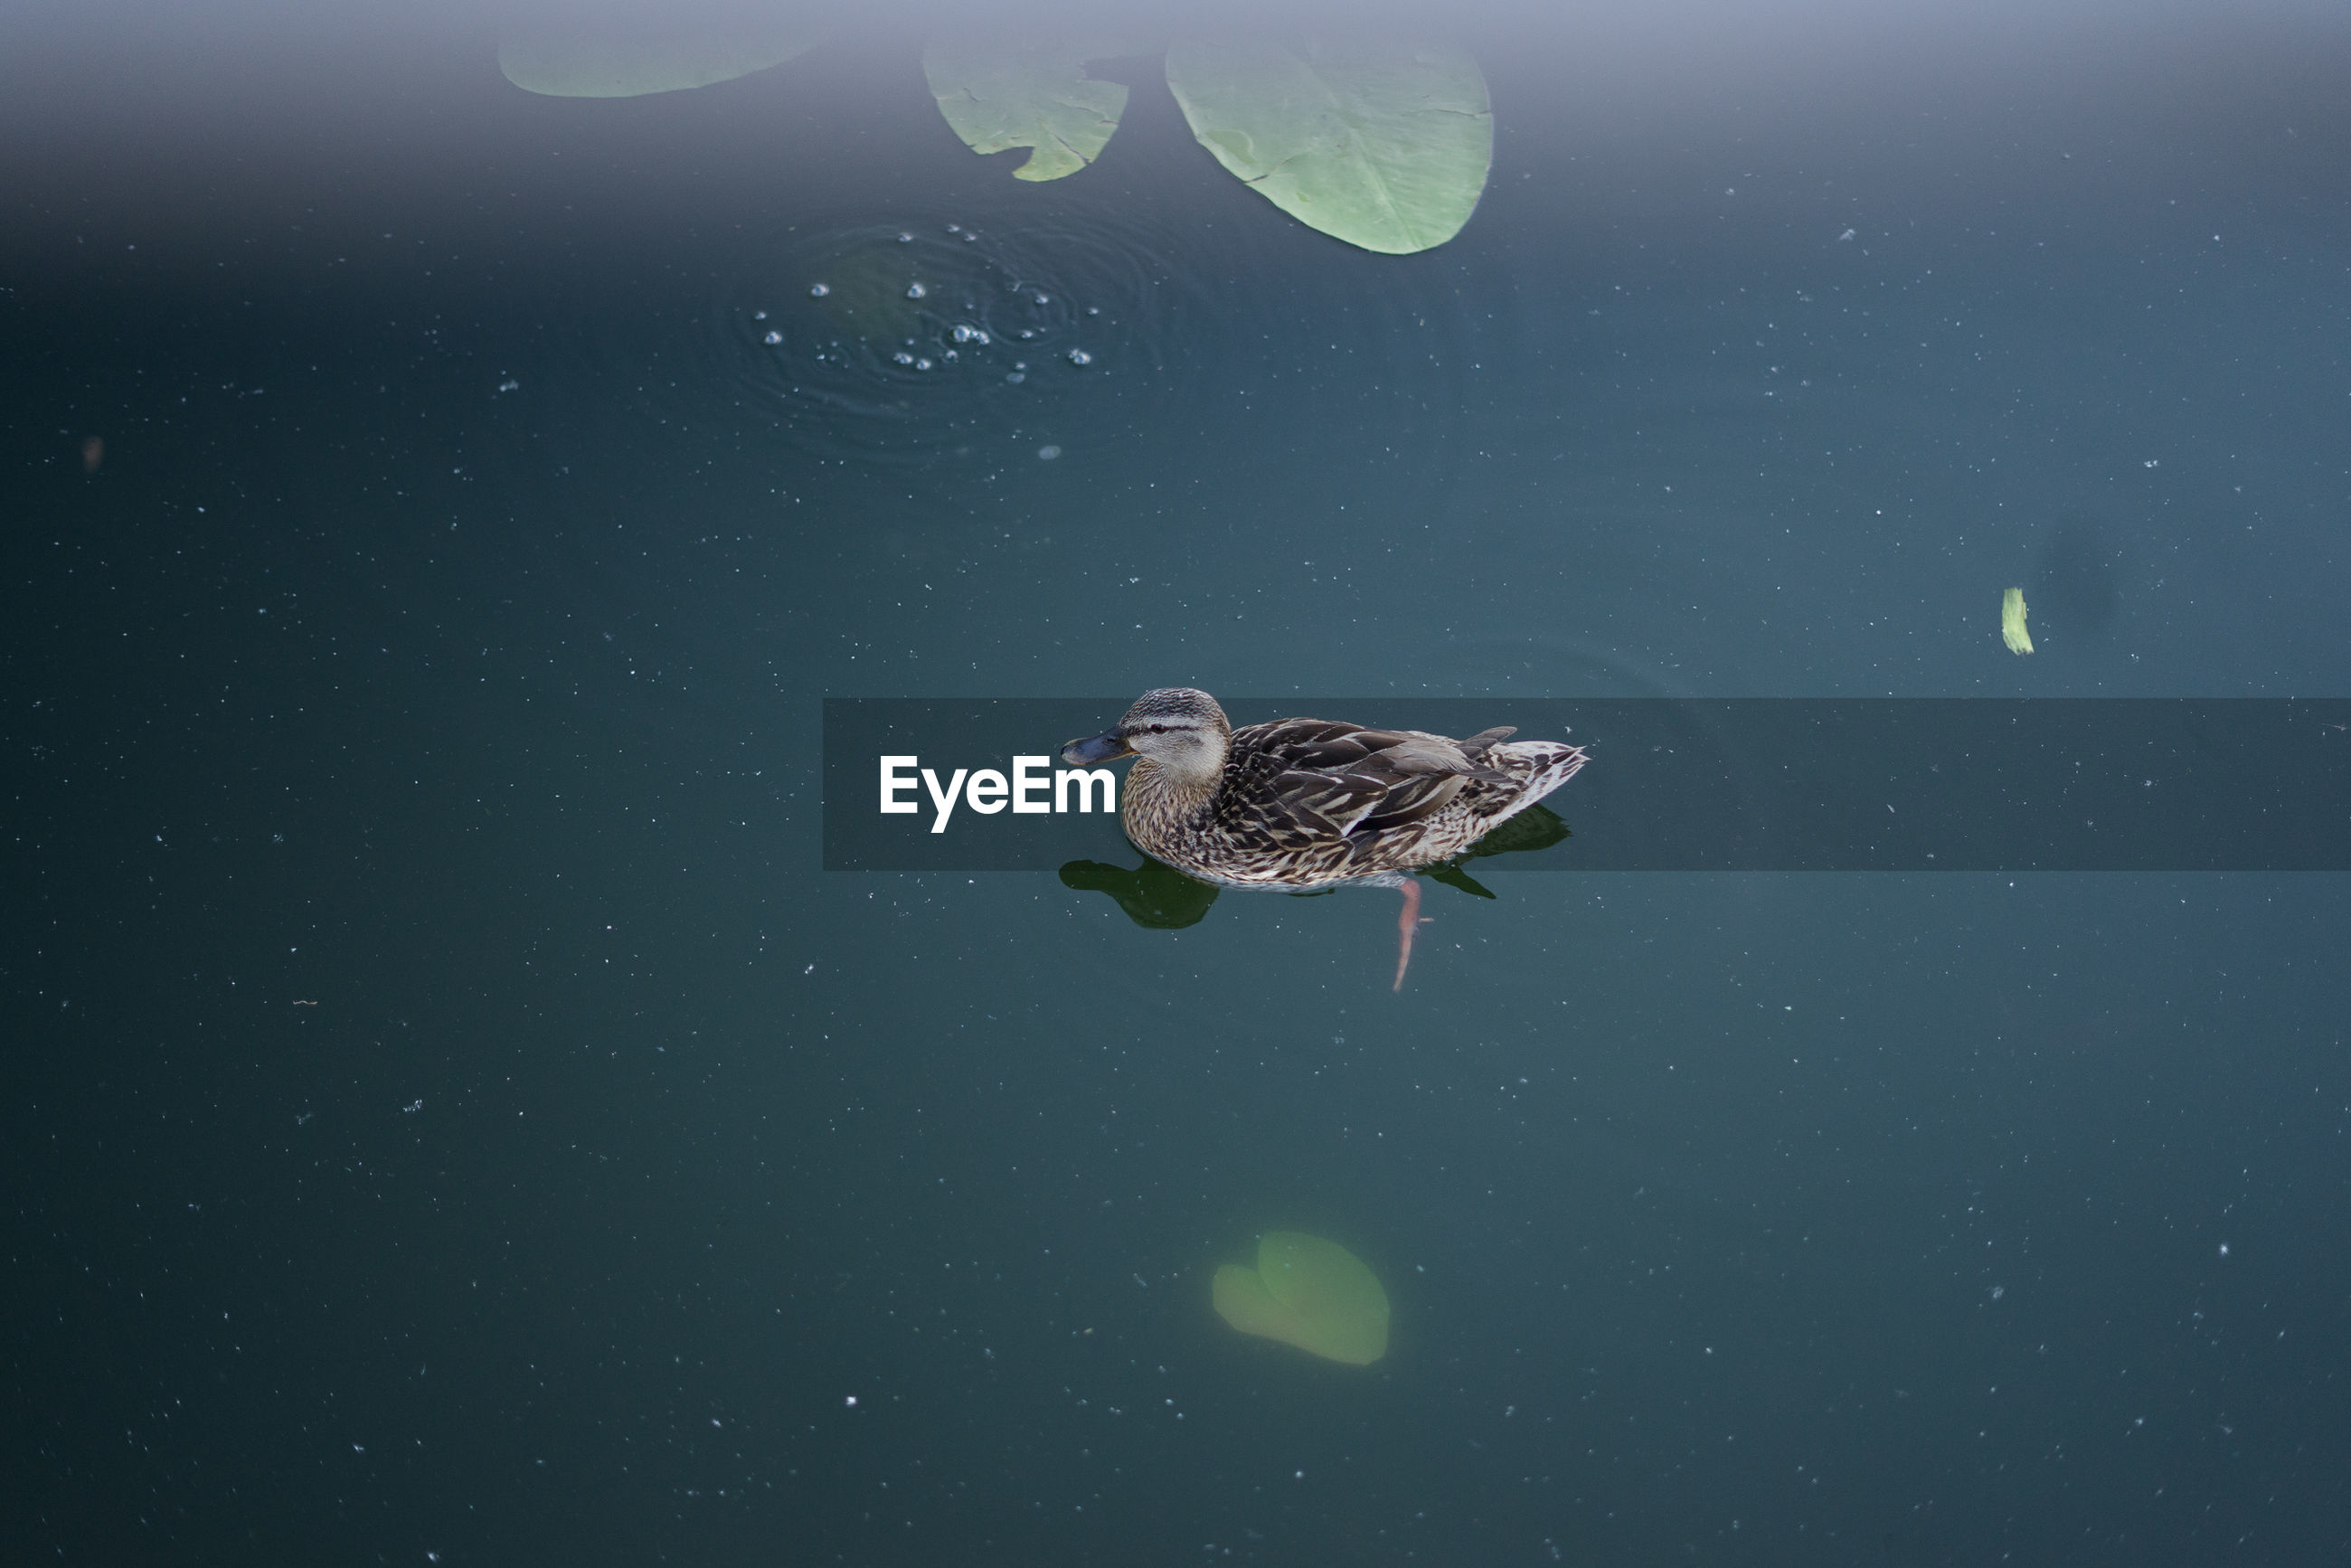 HIGH ANGLE VIEW OF A BIRD IN WATER